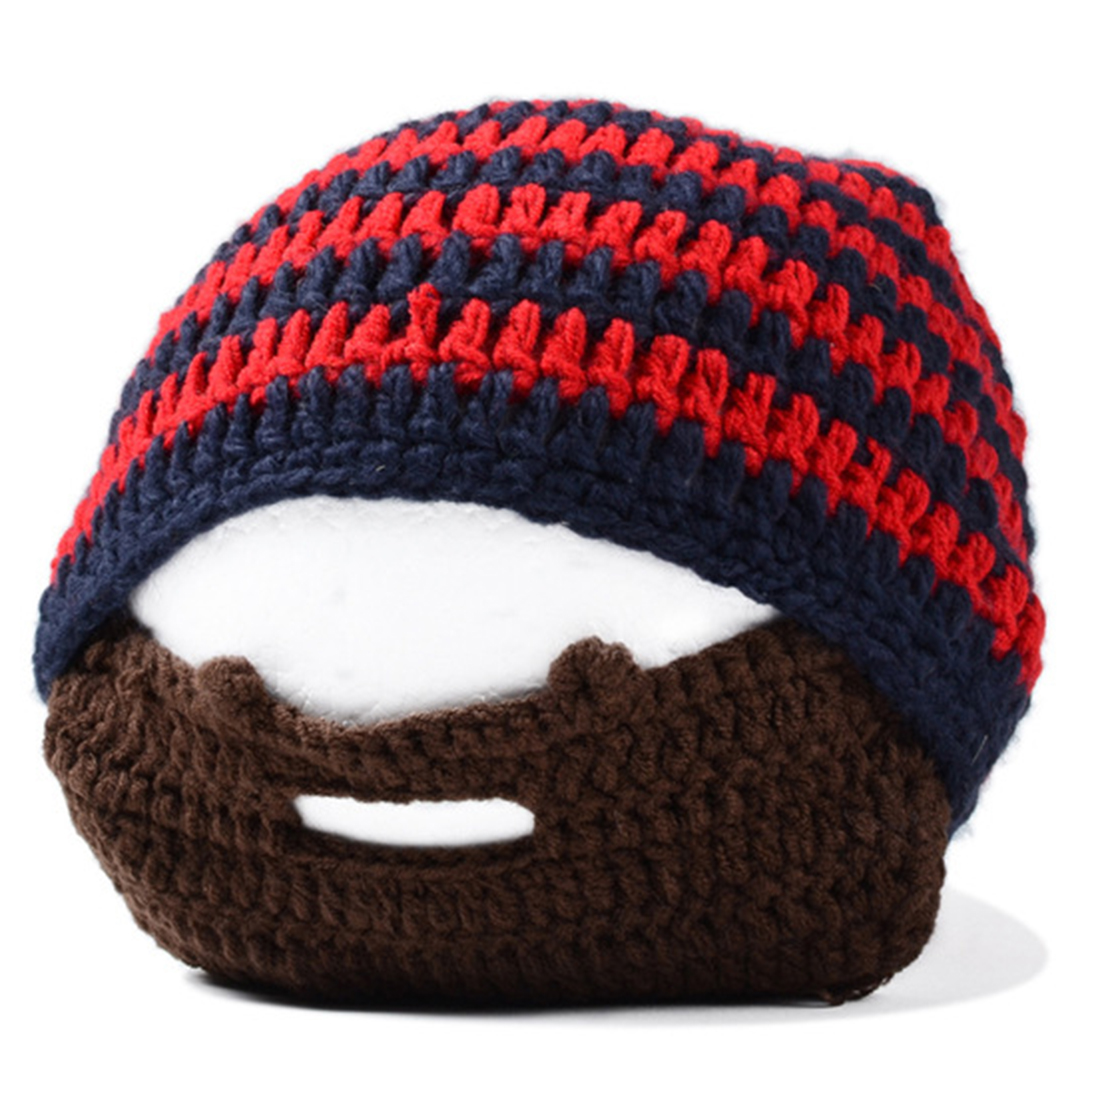 Handmade Knitted Crochet Beard Hat Bicycle Mask Ski Cap roman knight  octopus Cool Funny beanies Gift-in Skullies   Beanies from Apparel  Accessories on ... 71ecfc865e9